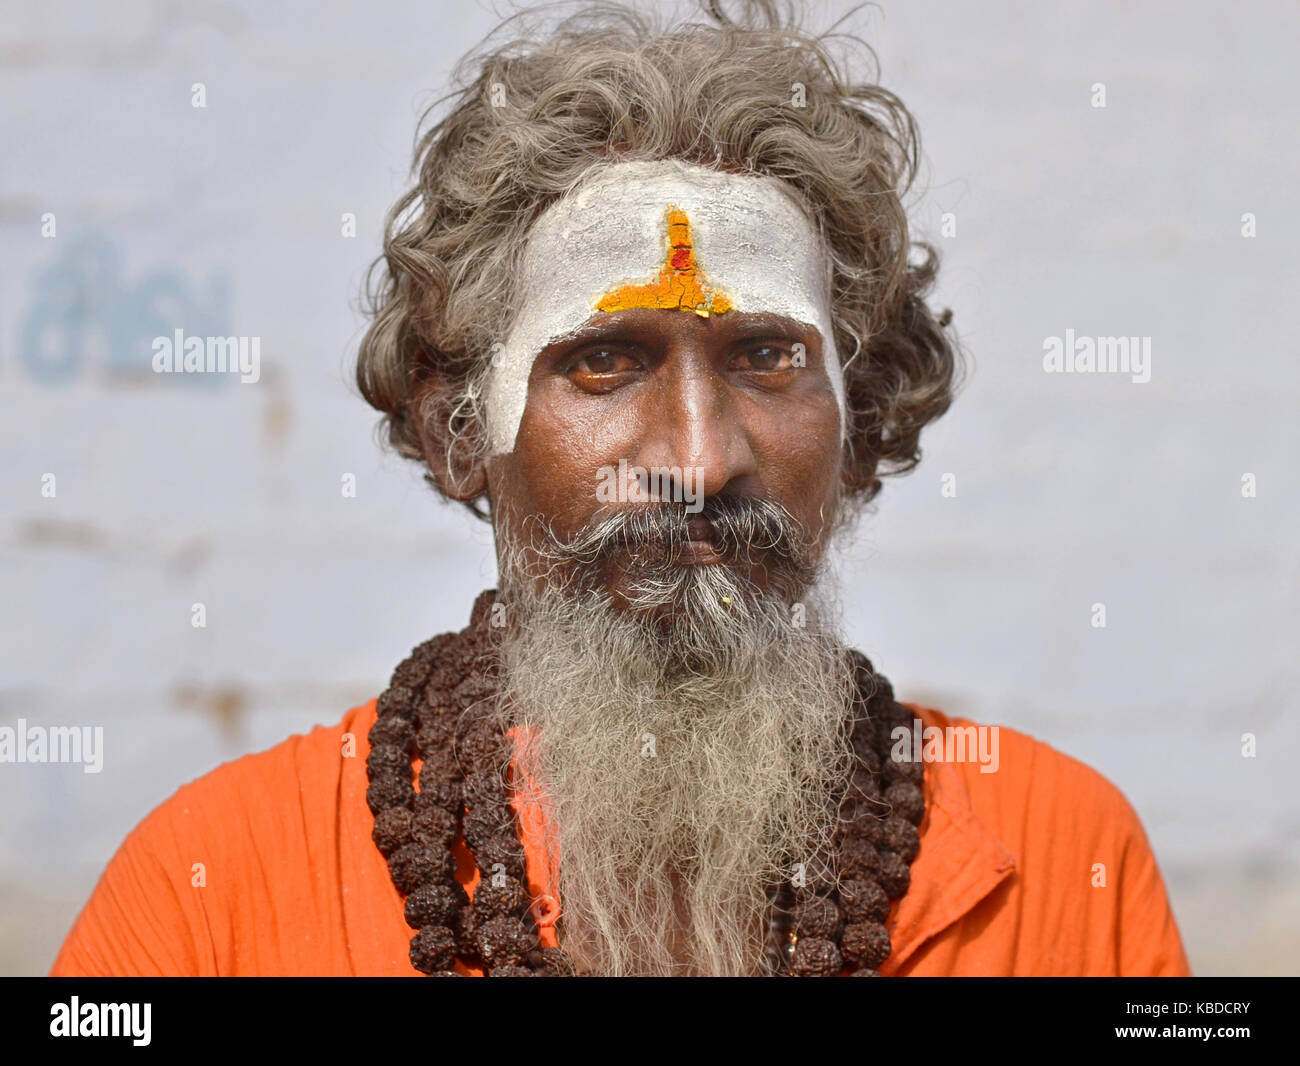 Middle-aged Shaivite sadhu (Hindu holy man who worships Shiva) with white vibhuti, wearing strings of big rudraksha - Stock Image